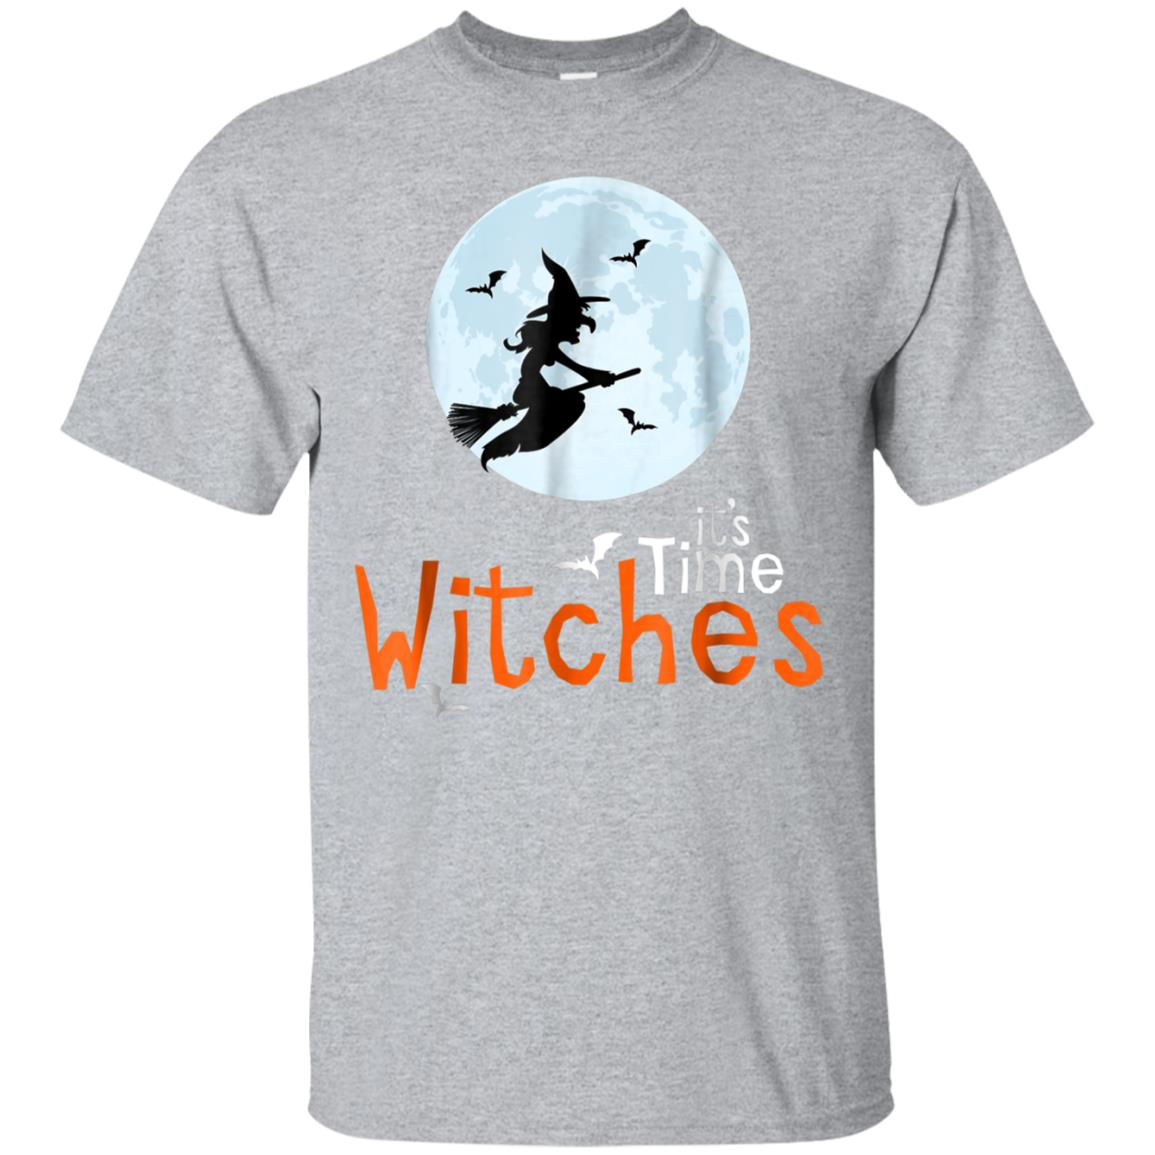 IT'S time witches Halloween funny shirt 99promocode